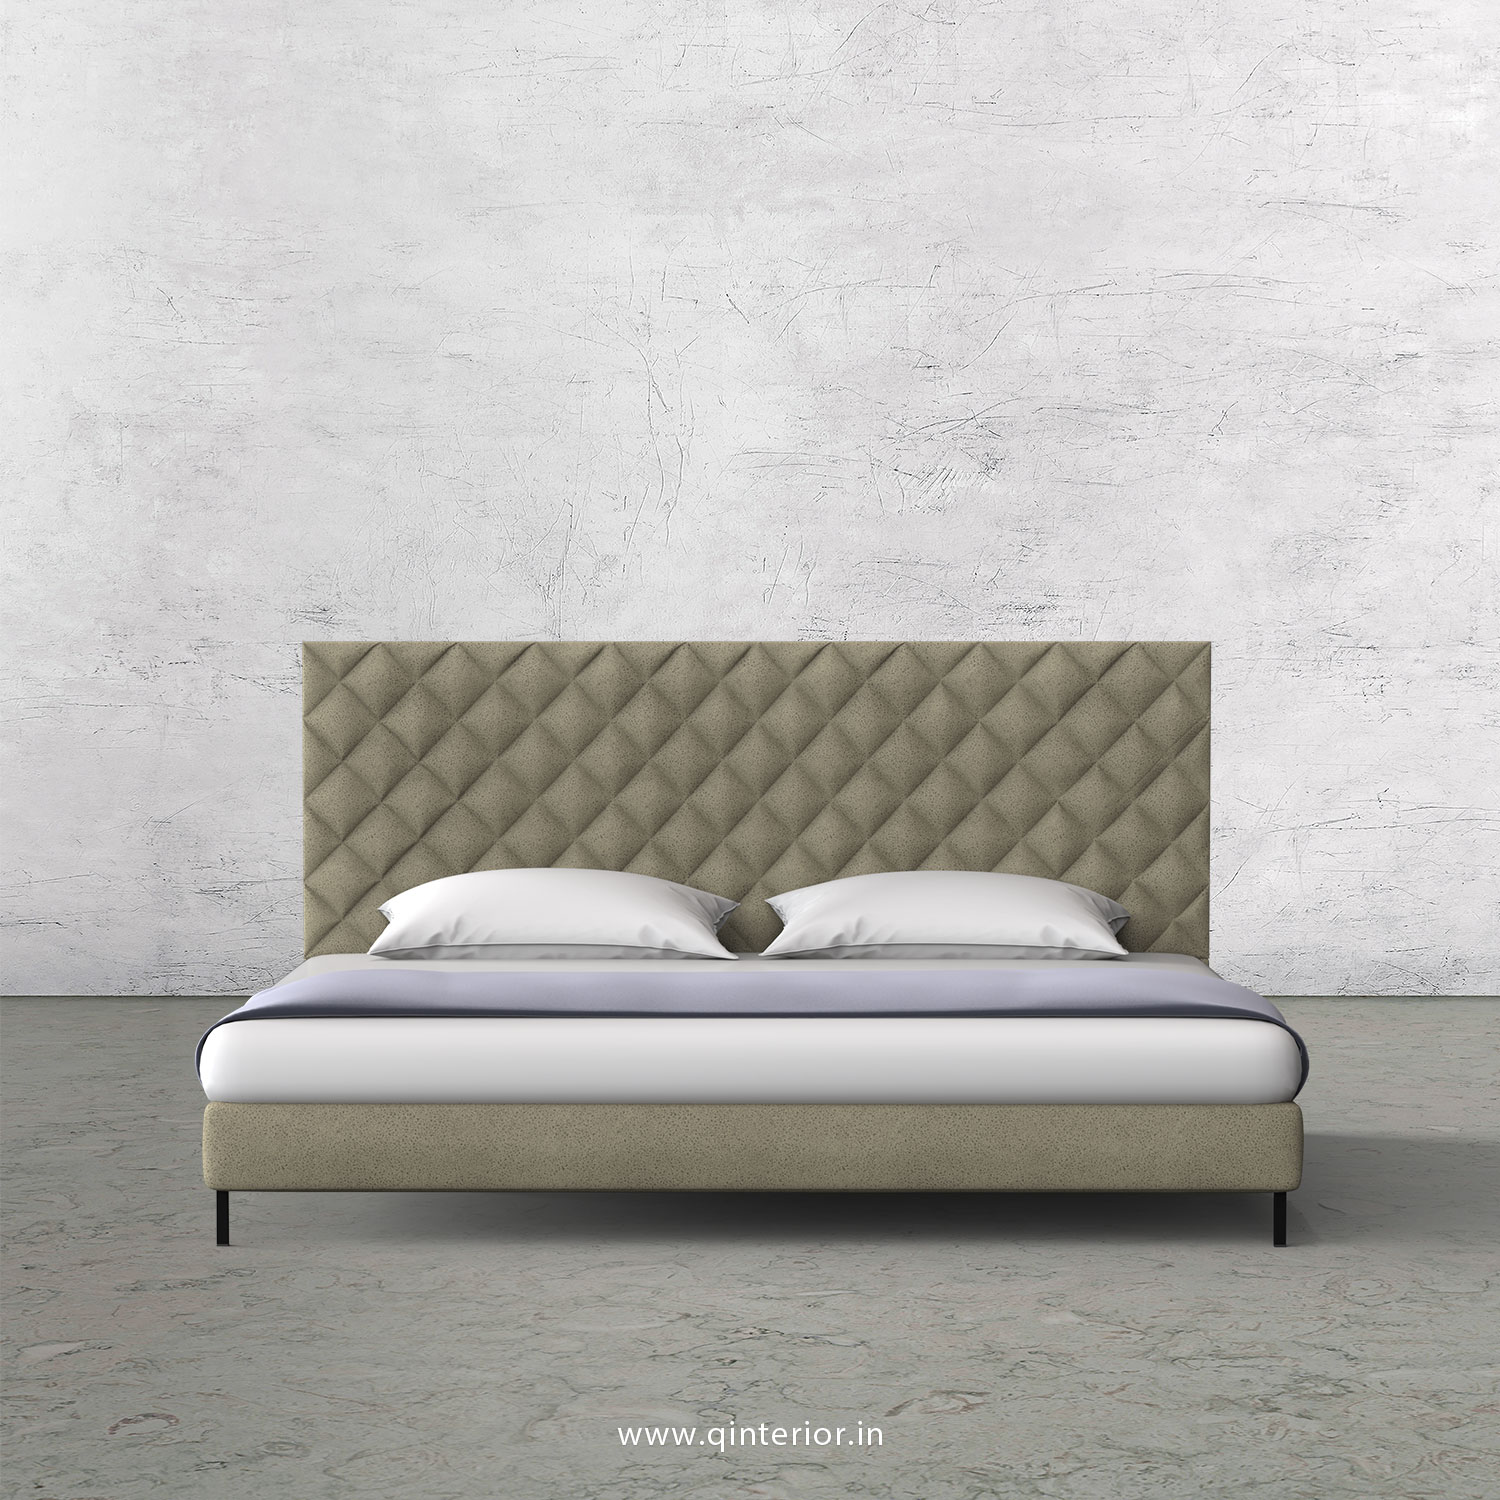 Aquila Queen Size Bed With Fab Leather Fabric Qbd003 Fl10 In Off White Color By Q Interior